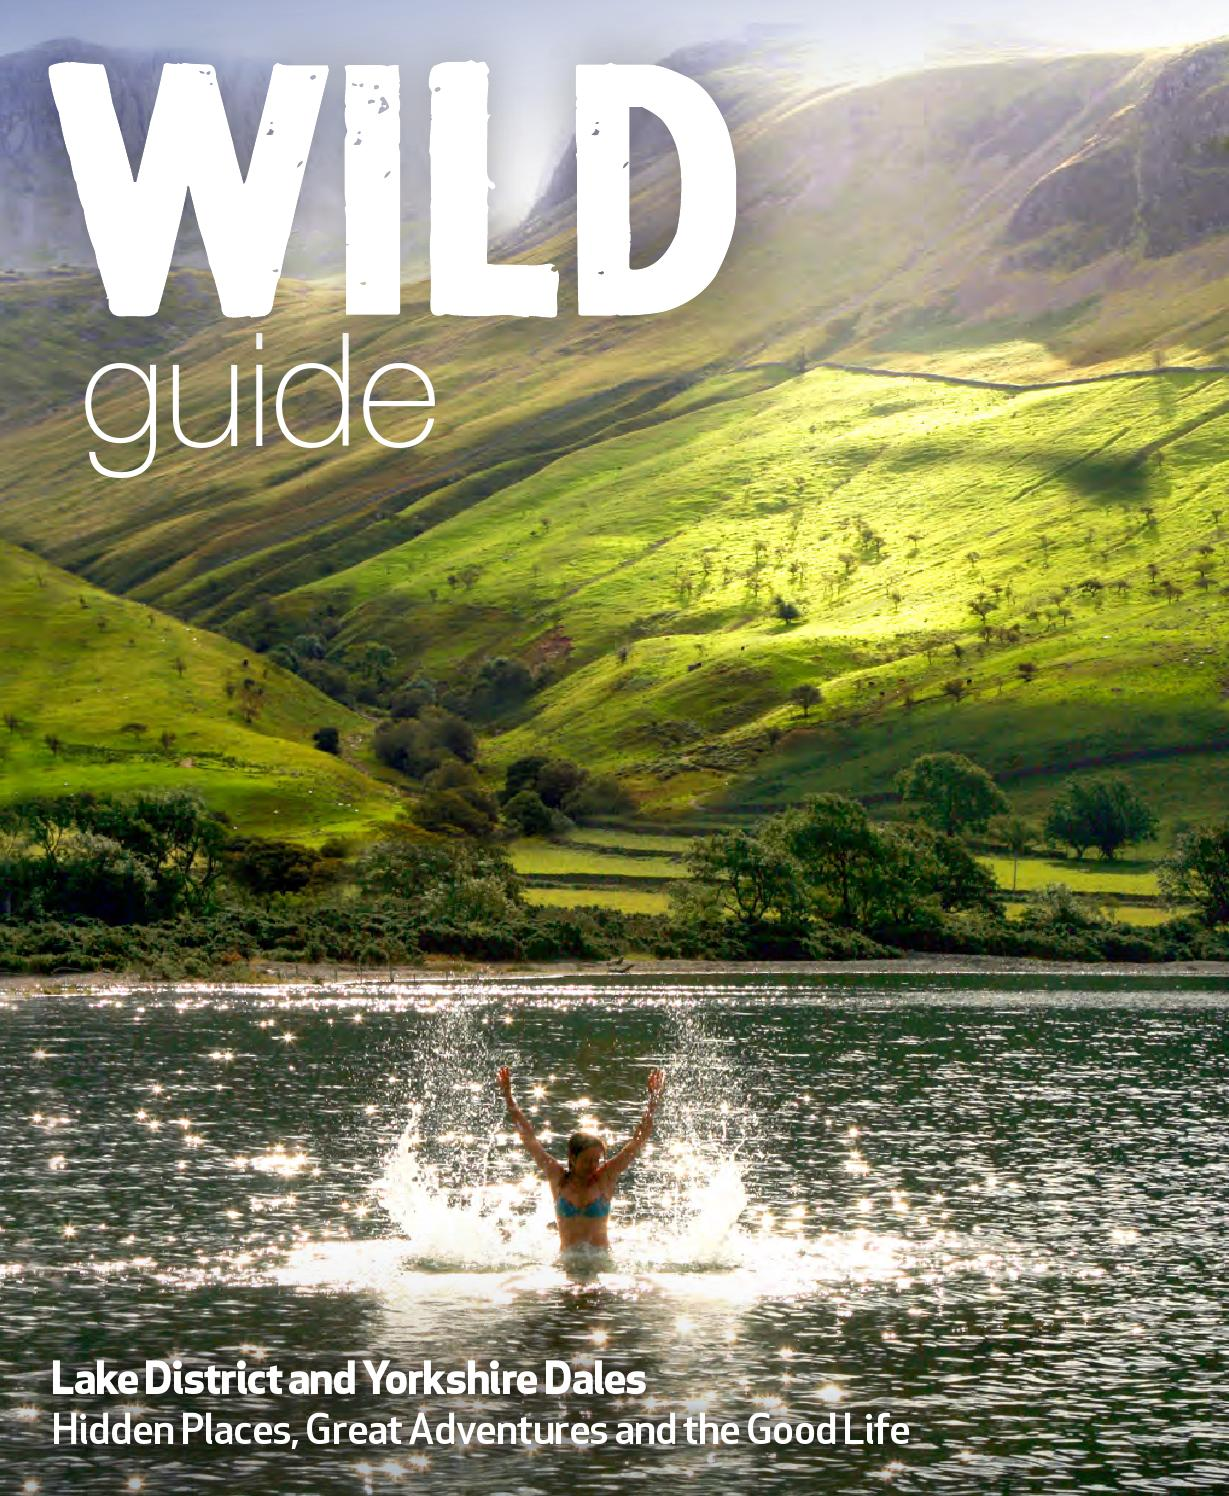 Wild Guide Lake District And Yorkshire Dales By Wild Things Publishing Issuu